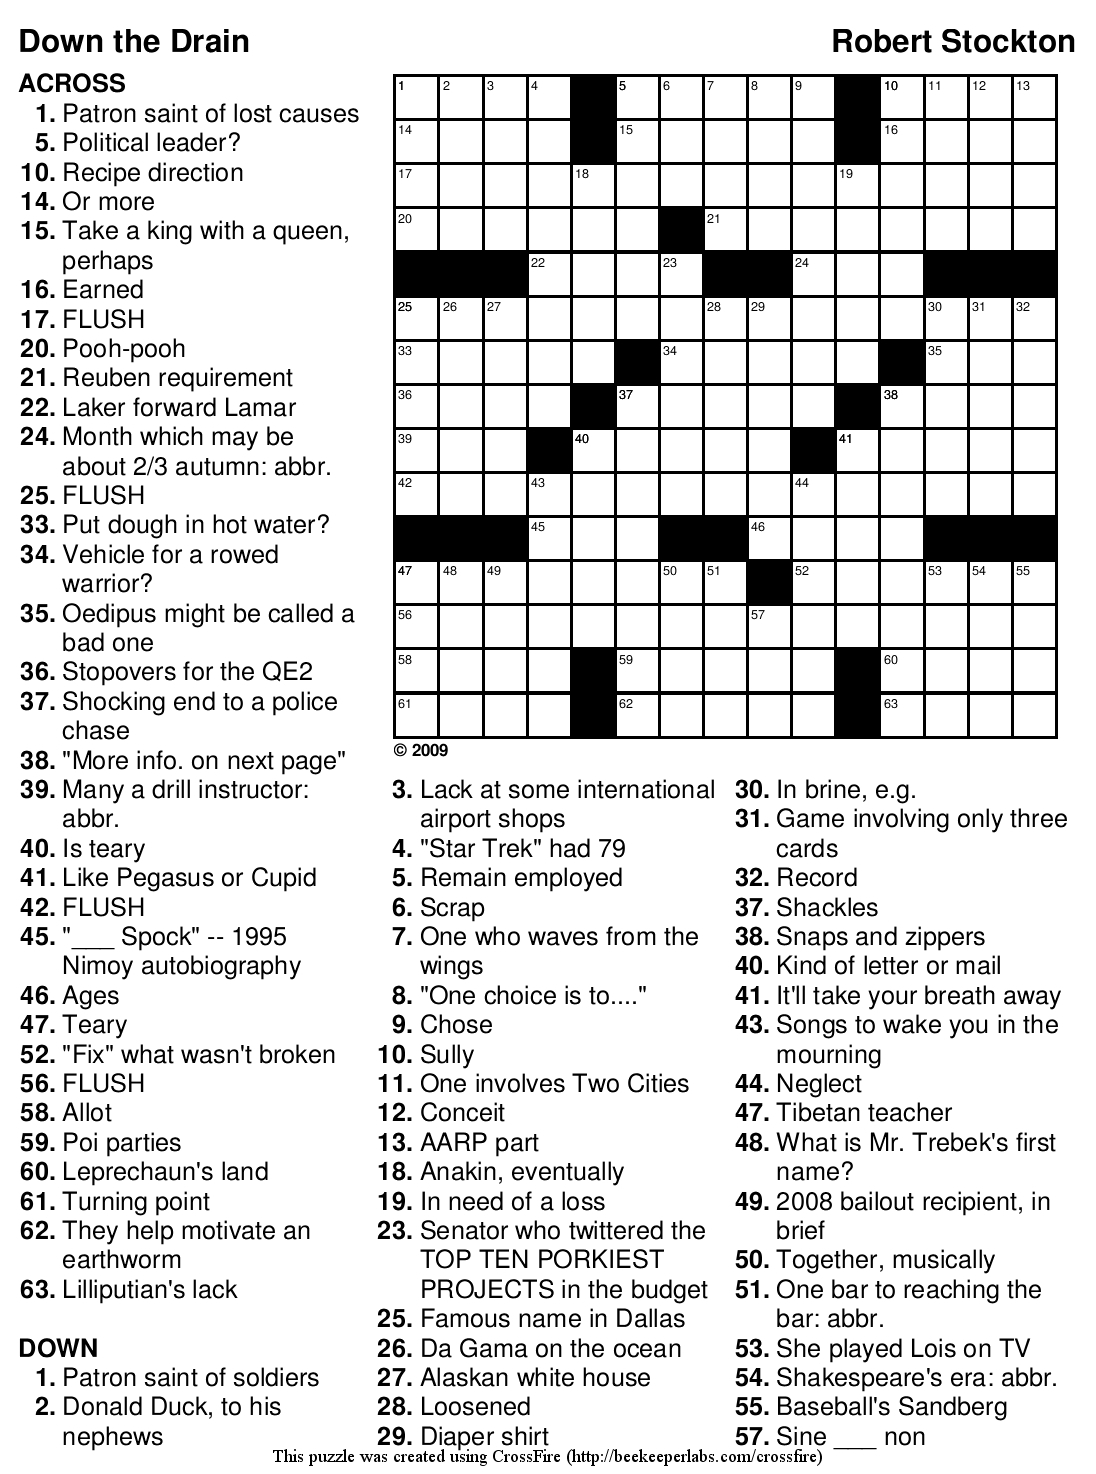 Free Printable Large Print Crossword Puzzles | M3U8 - Printable Crossword Puzzles For Adults Large Print